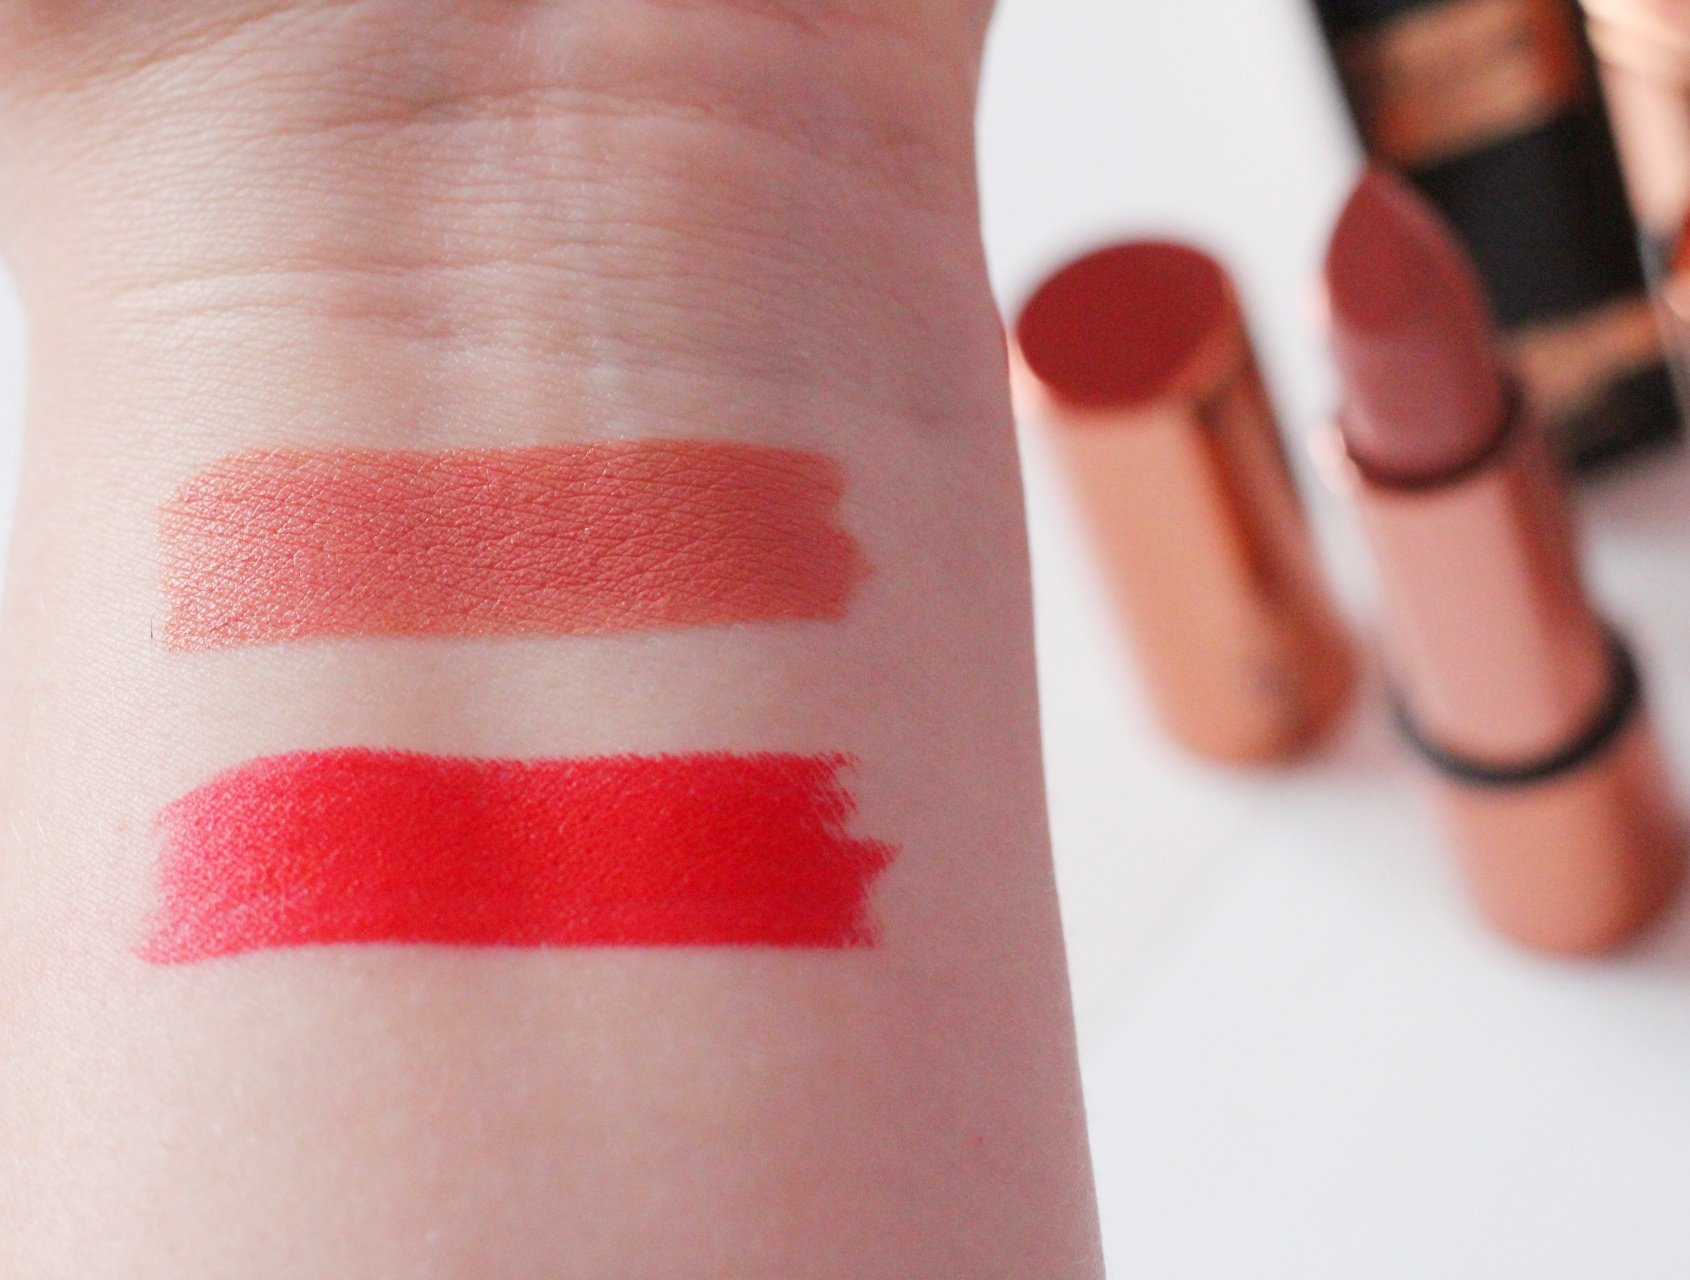 Rosie for Autograph at Marks and Spencer Makeup Review Lipstick Swatches.jpeg